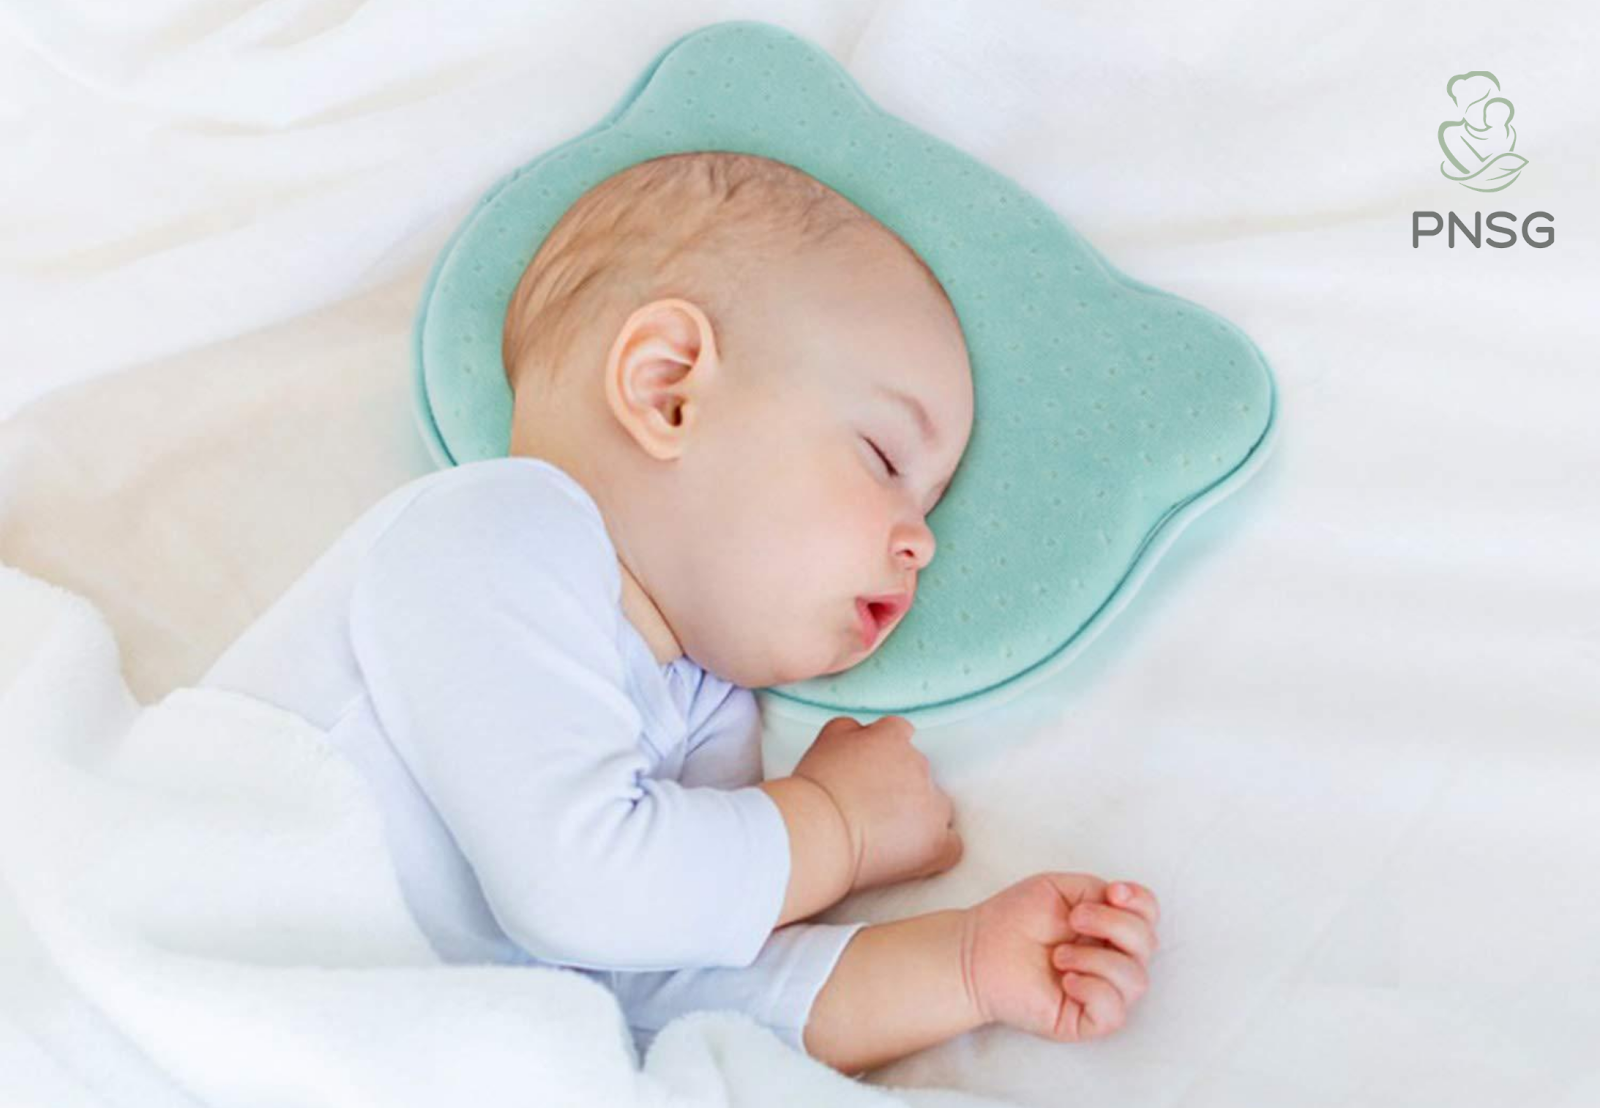 Nursery Must-Have Items That Help Your Baby Sleep Better